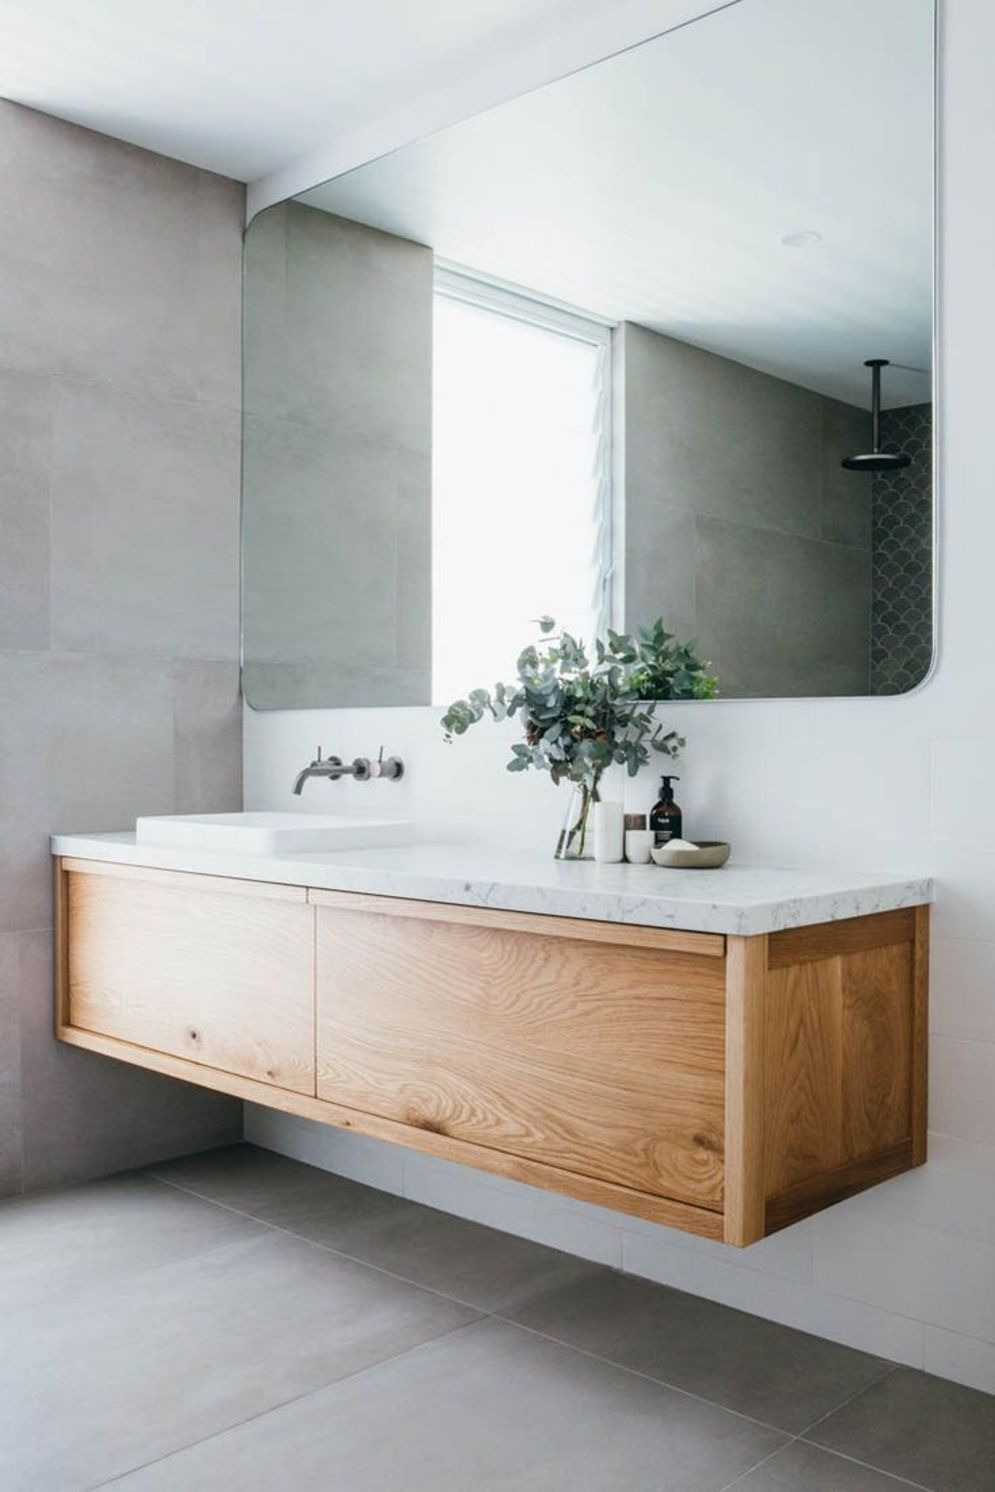 Most savvy bathroom designs with elegant wood finish to give more natural feel Image 14